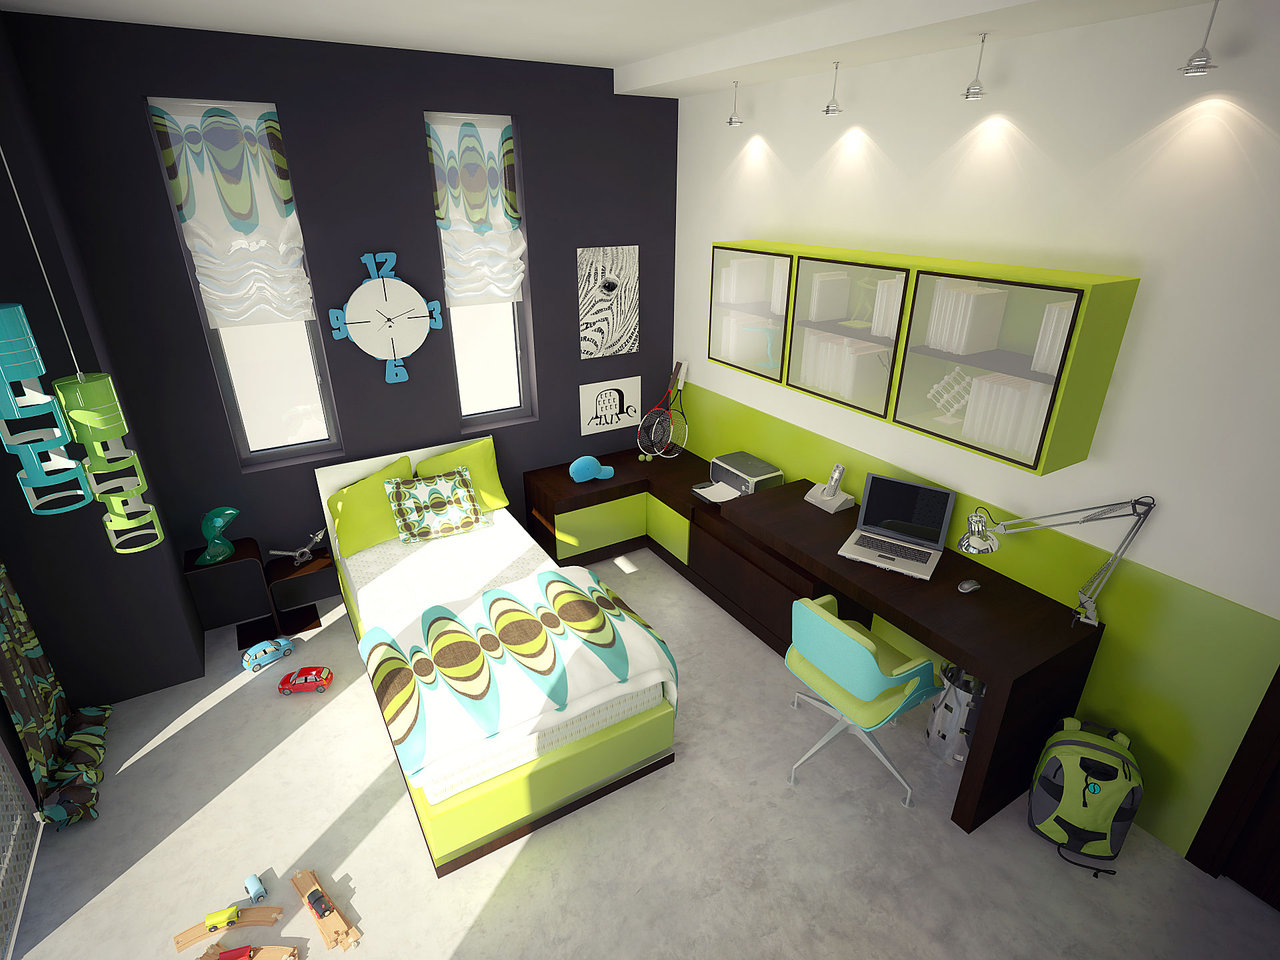 How to Add Color to Rooms With White Walls